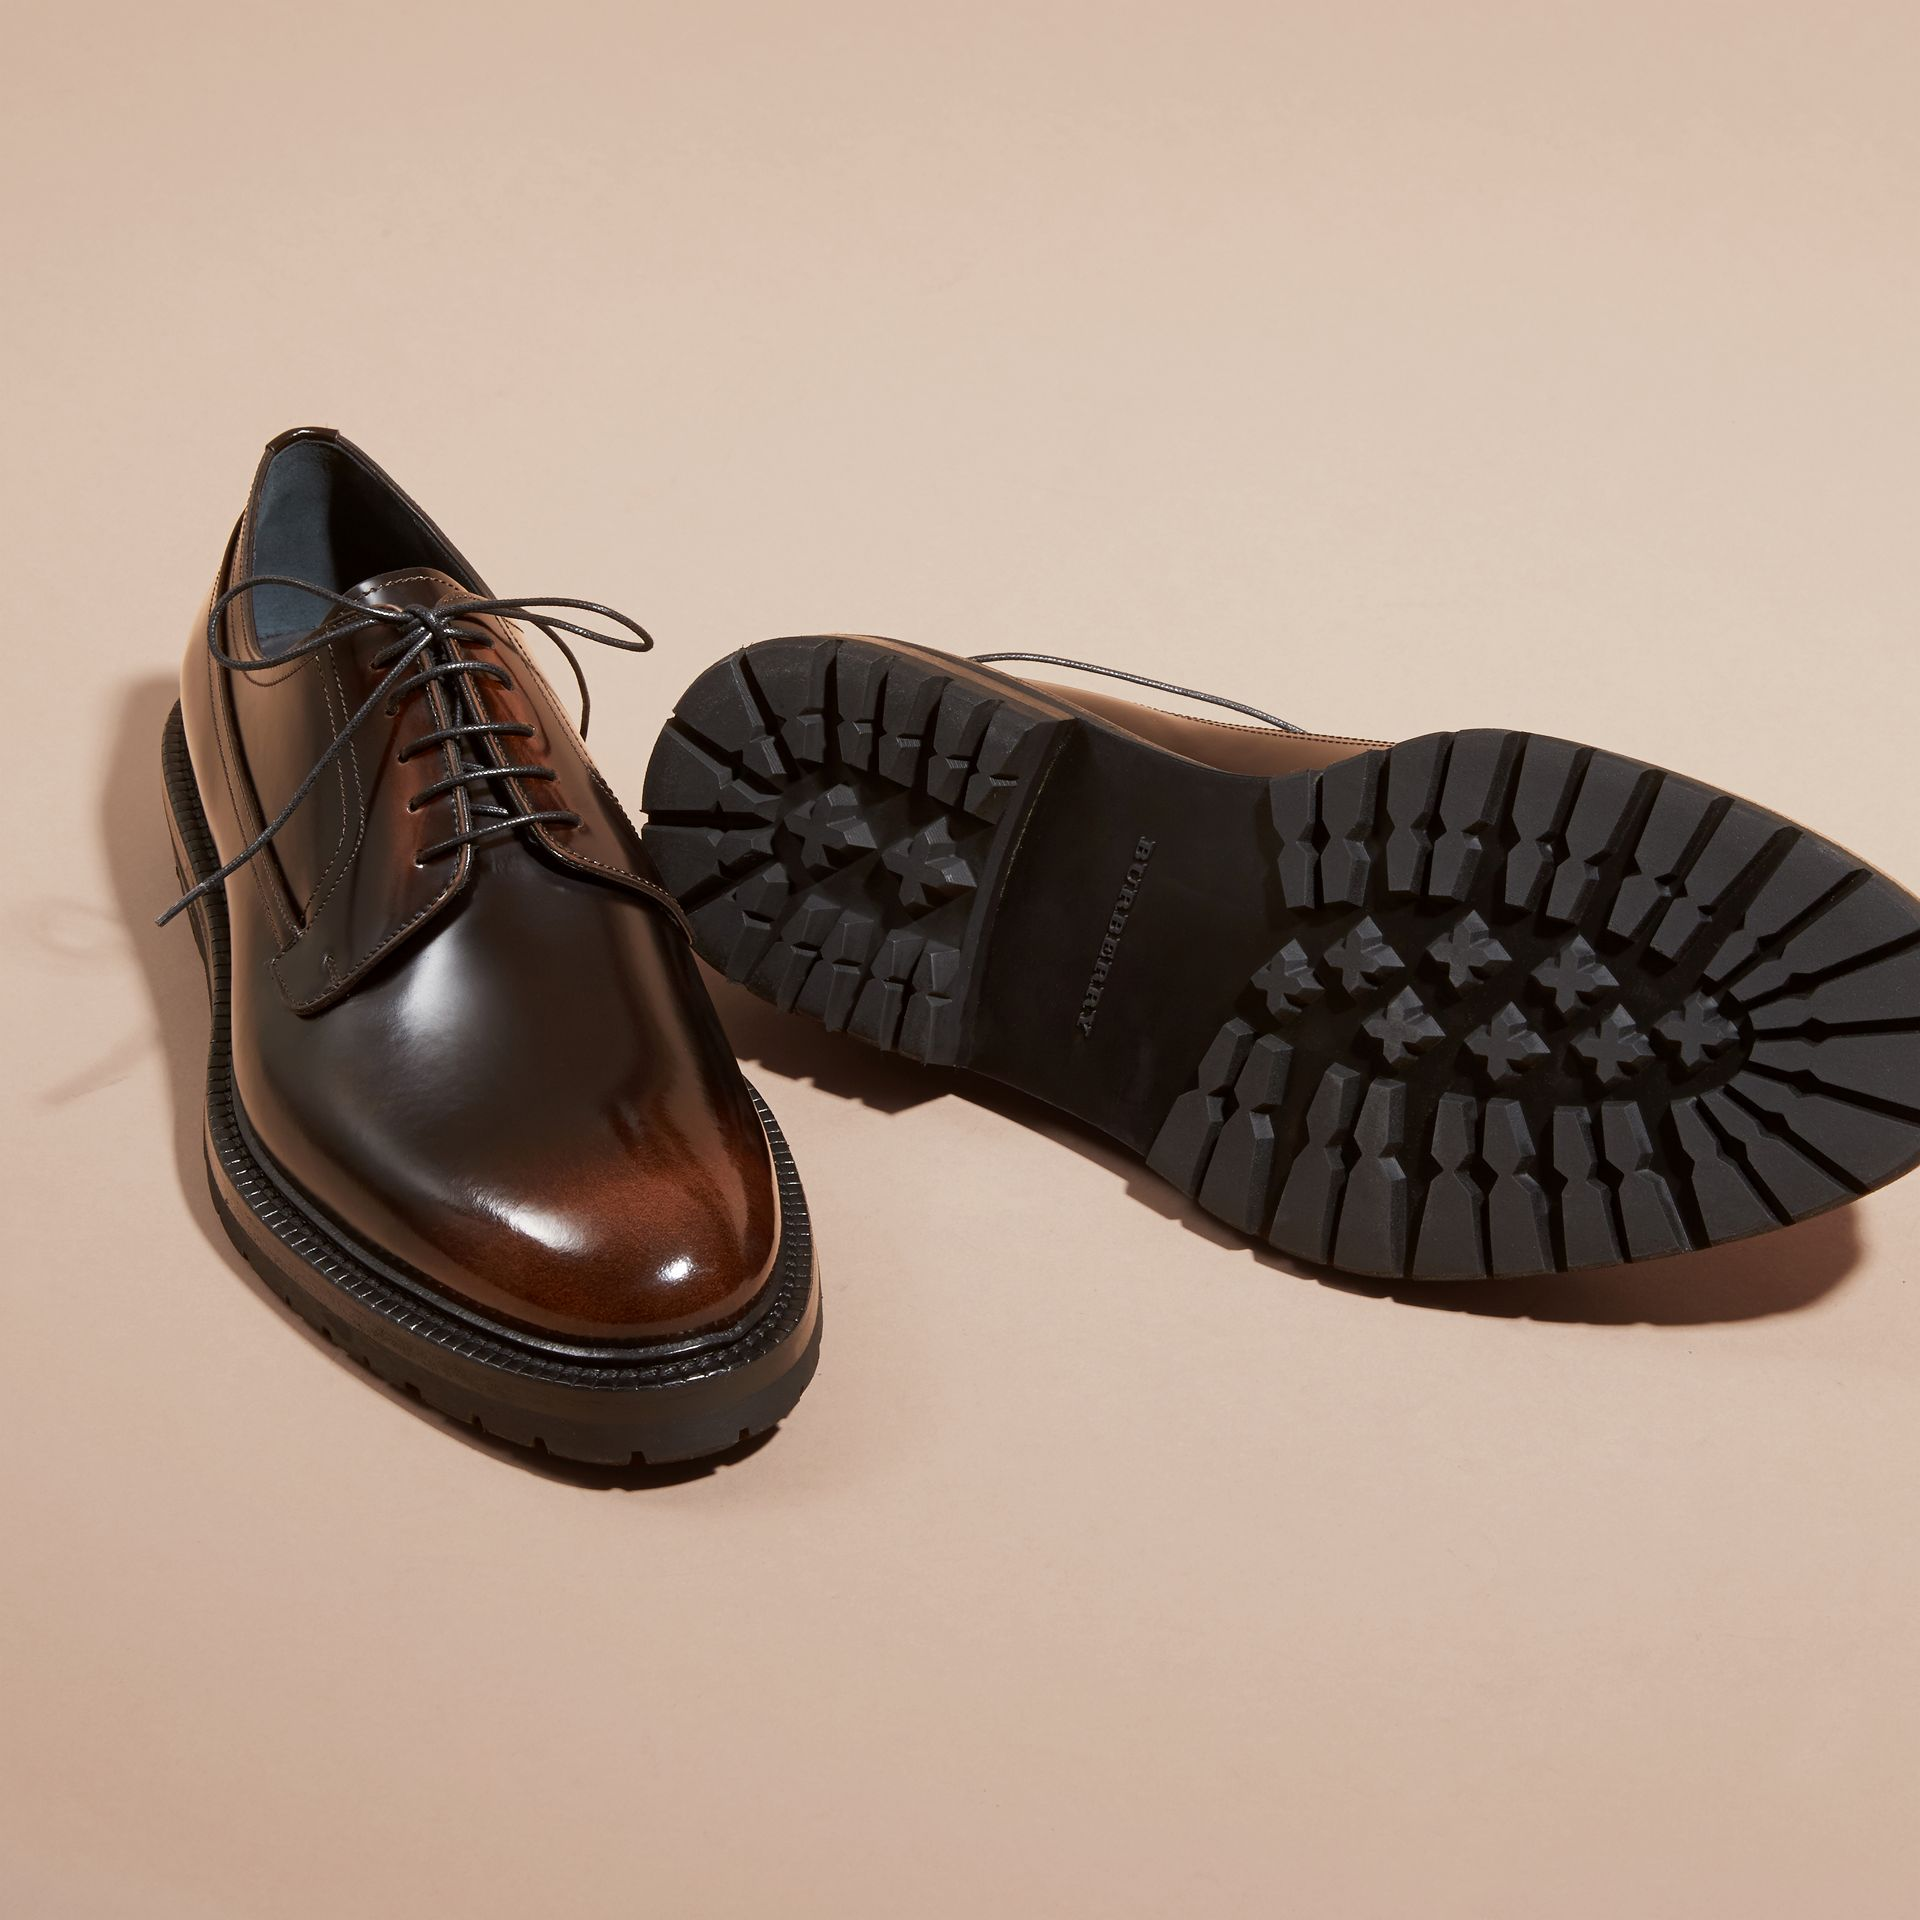 Chaussures de style derby en cuir bruni (Chocolat Amer) - Homme | Burberry - photo de la galerie 5